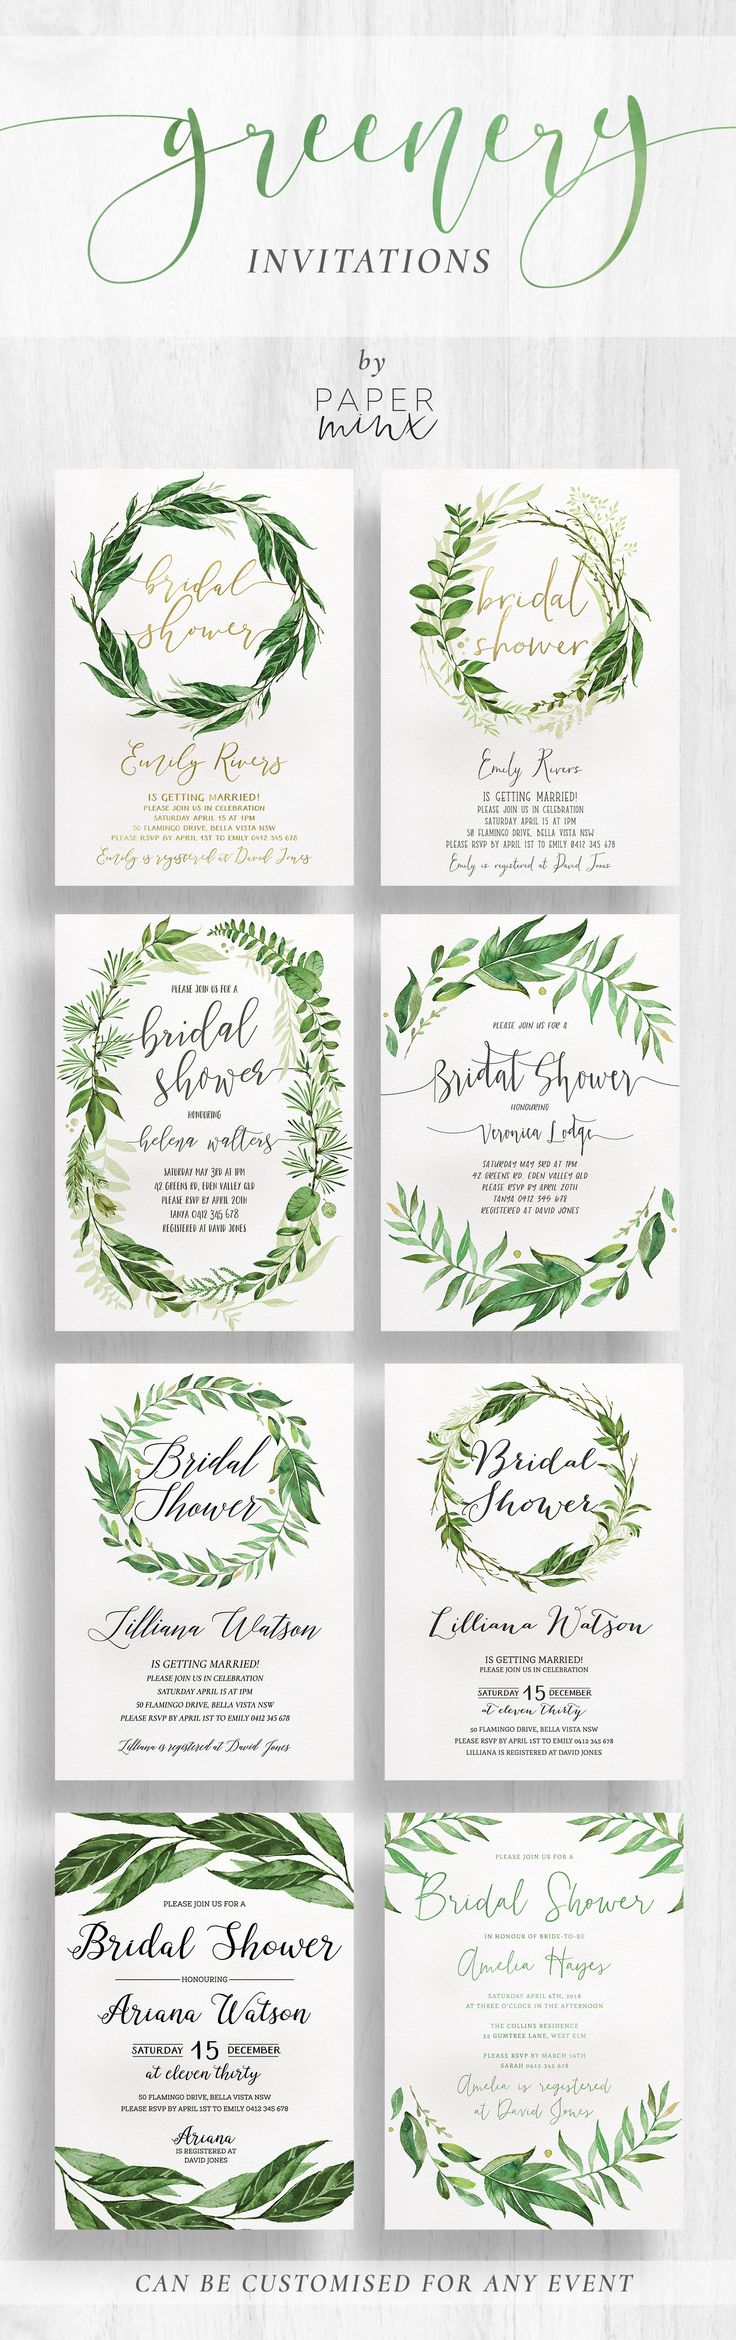 Greenery Bridal Shower Invitations by Paper Minx Designs || Available at www.paperminxdesigns.etsy.com || Boho Greenery | Garden Party | Kitchen Tea | Bridal Shower | Romantice Greenery ||